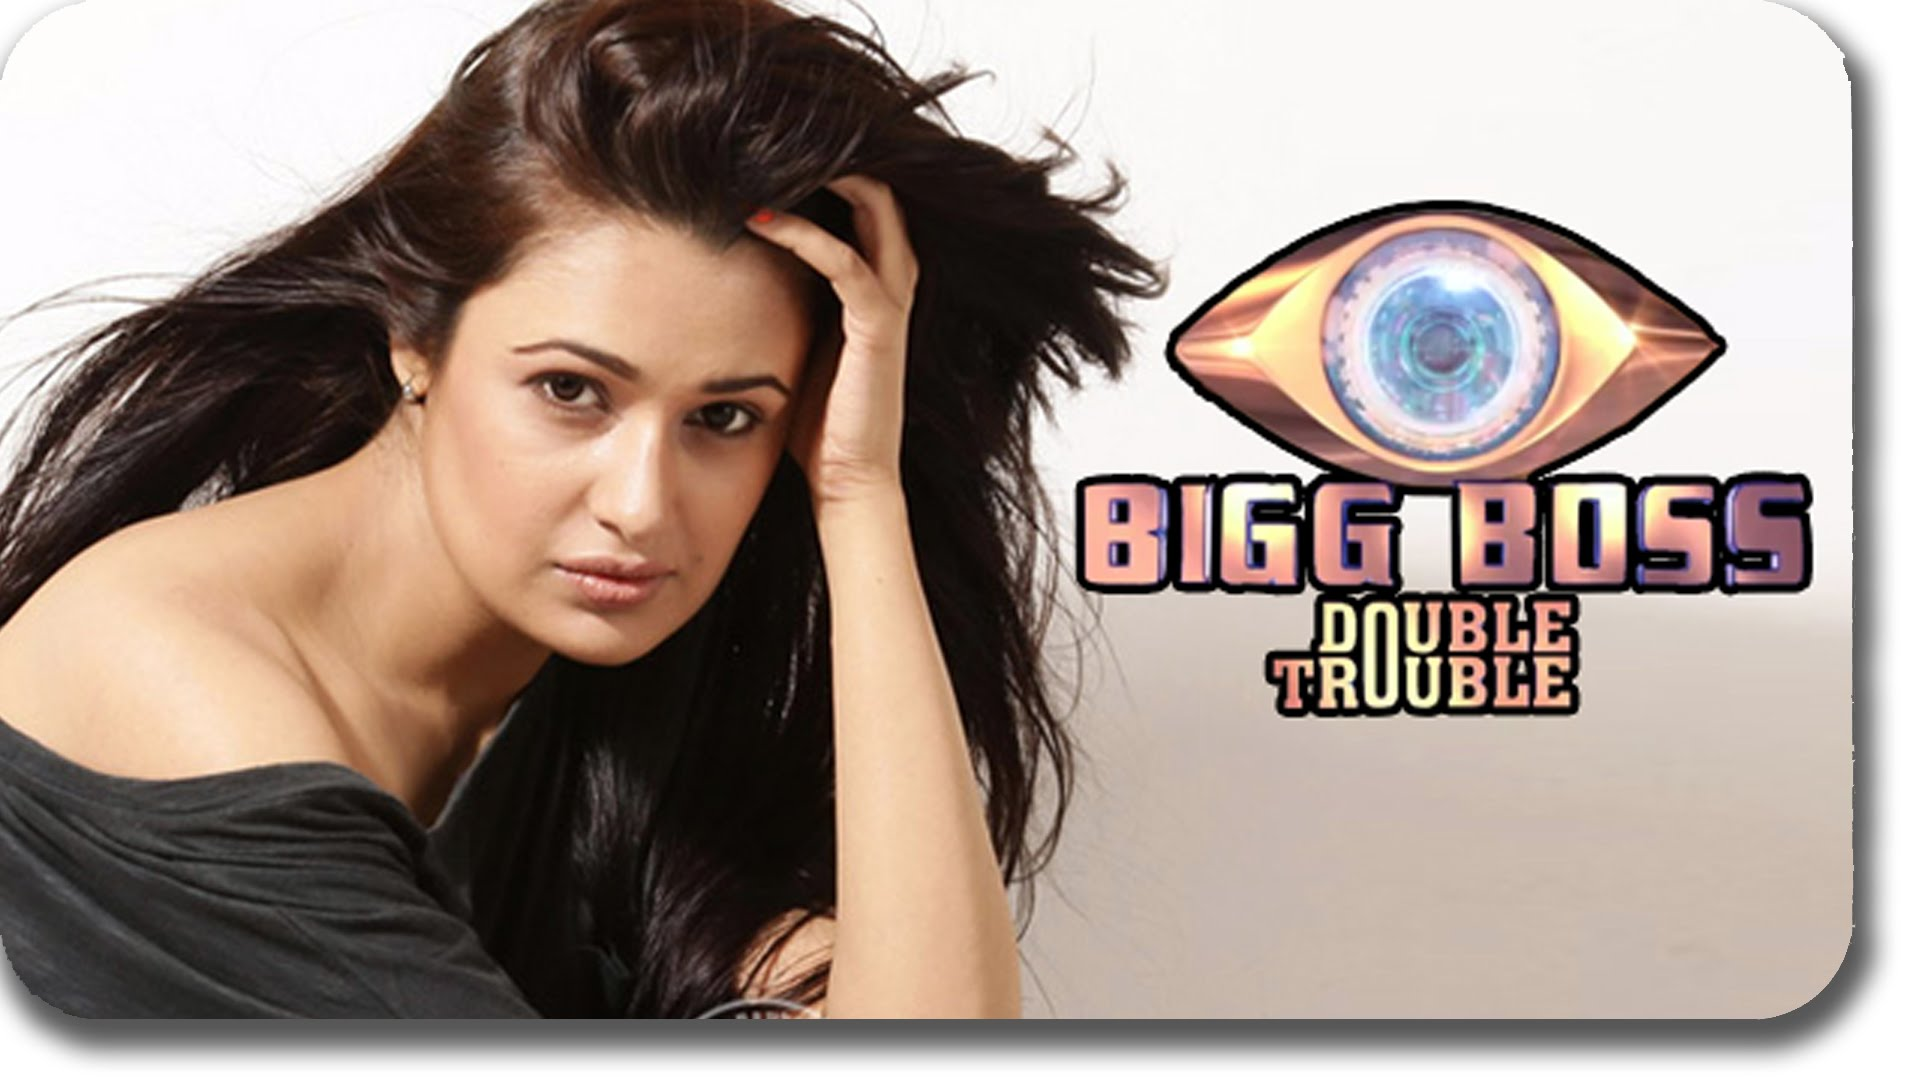 Bigg Boss 9: Yuvika Chaudhary Eliminated